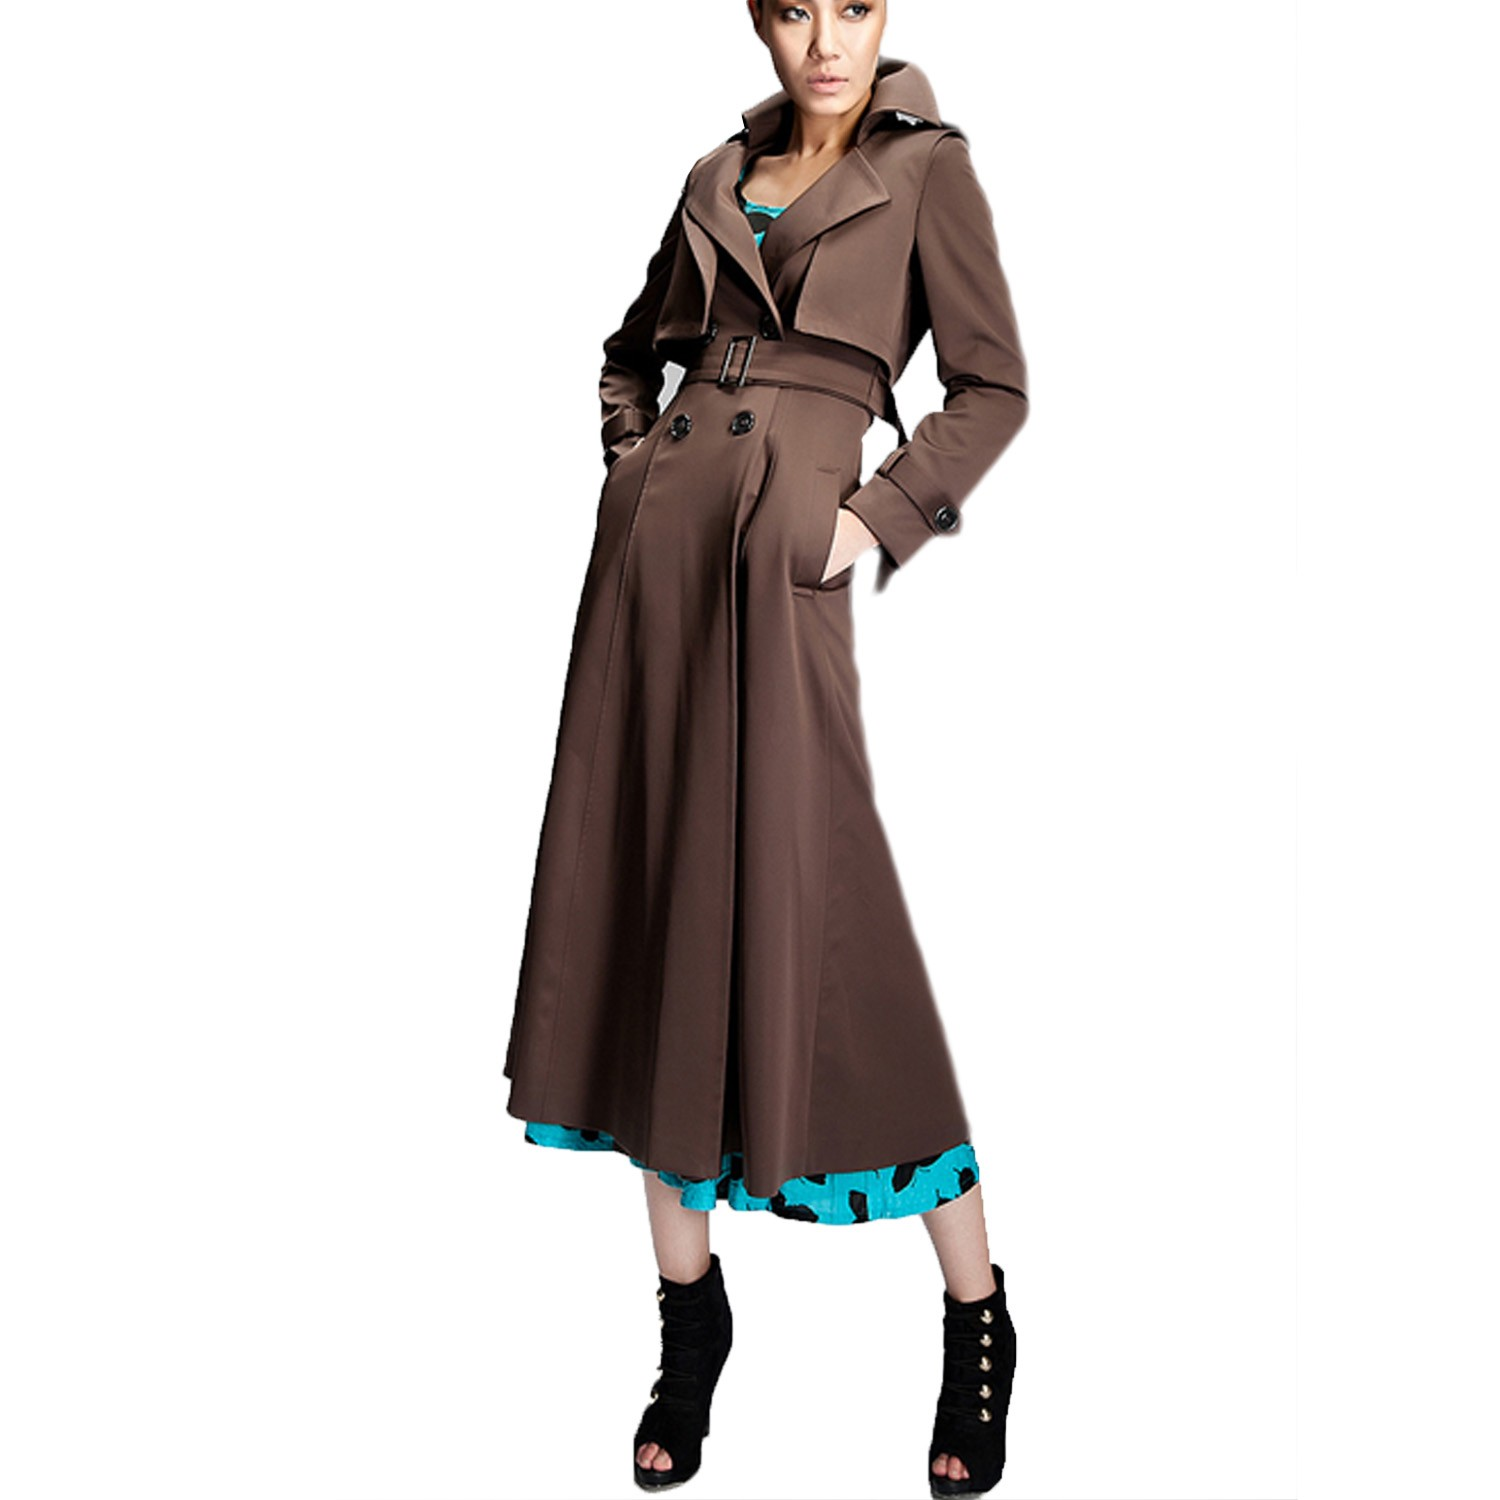 Pleated Dress Mac Vintage Womens Long Trench Coat calf ...